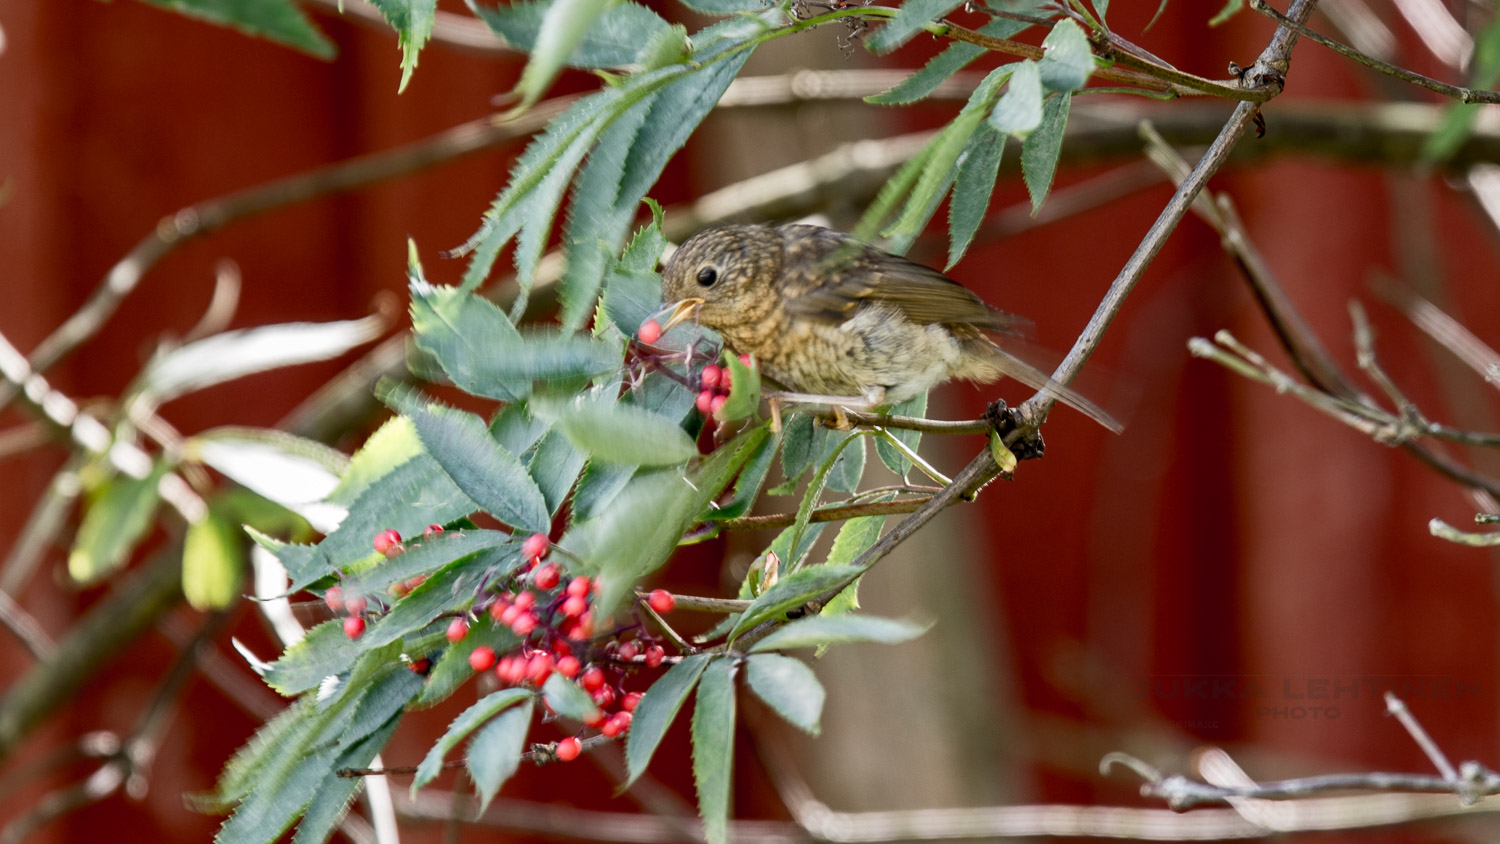 robins feeding from berry bush